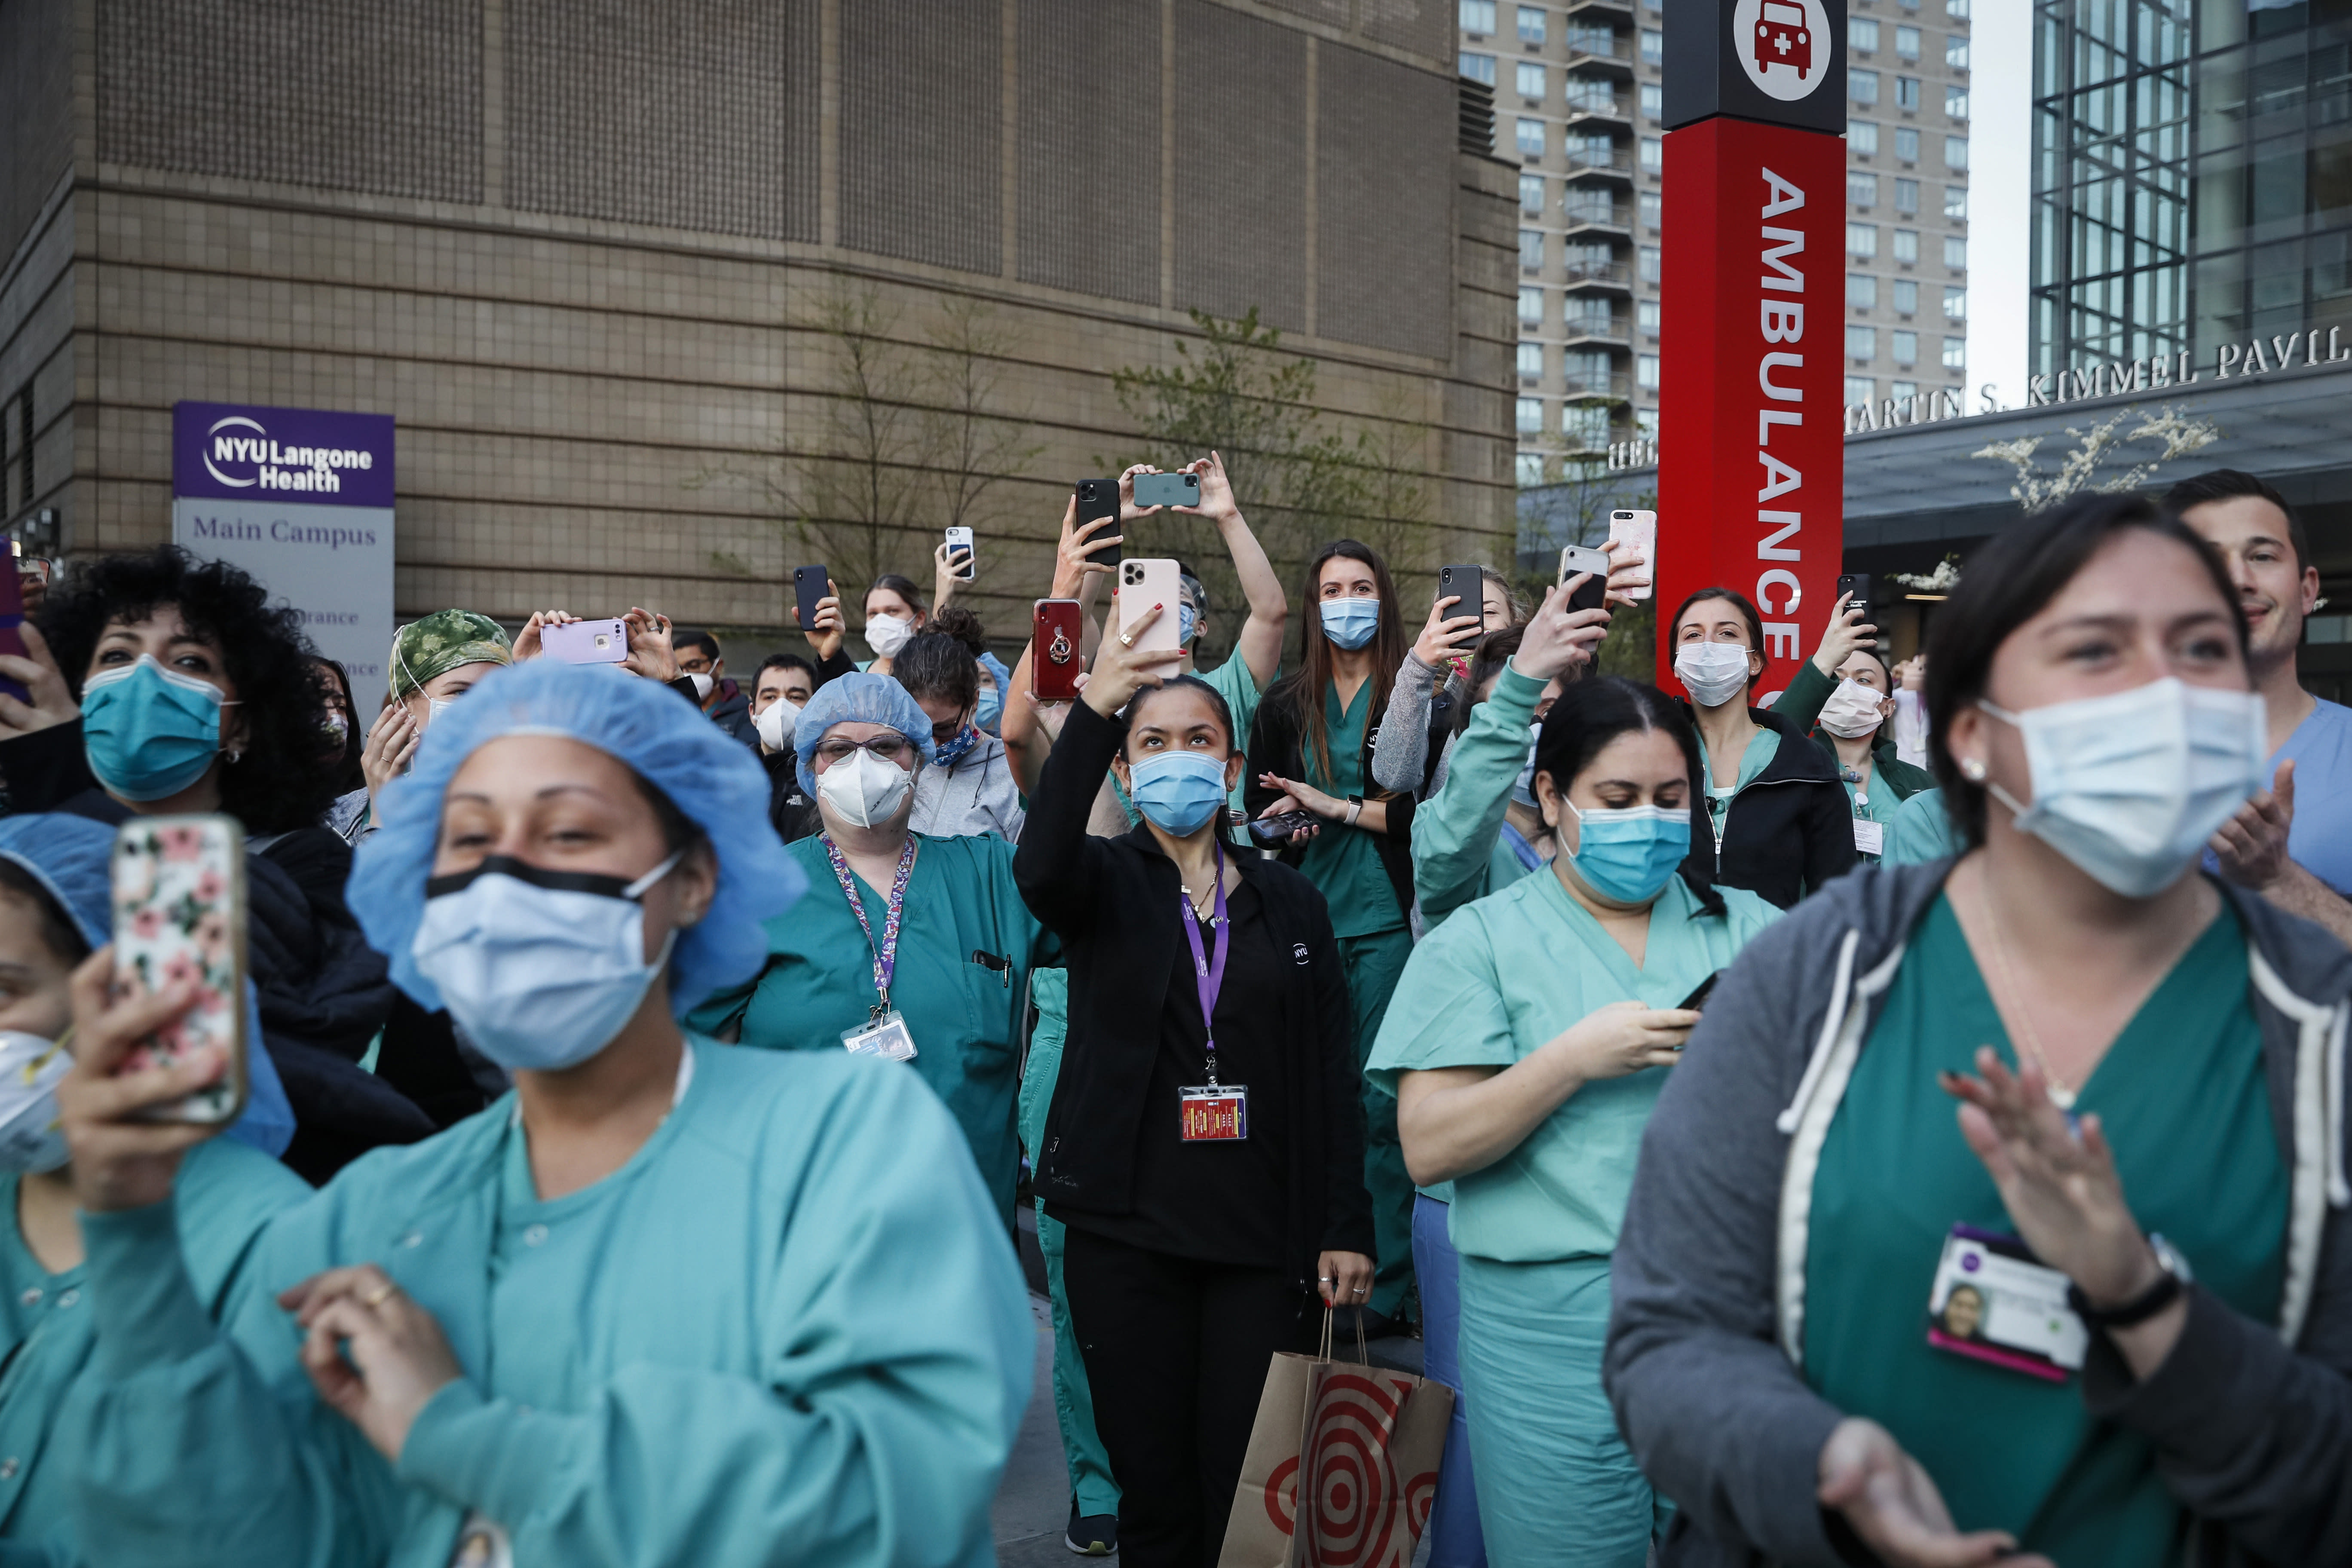 FILE - In this April 28, 2020, file photo Medical personnel attend a daily 7 p.m. applause in their honor, during the coronavirus pandemic outside NYU Langone Medical Center in the Manhattan borough of New York. Nurses on the front lines of New York's COVID-19 pandemic are calling for the state to enact minimum staffing standards ahead of another wave of infections. (AP Photo/John Minchillo, File)